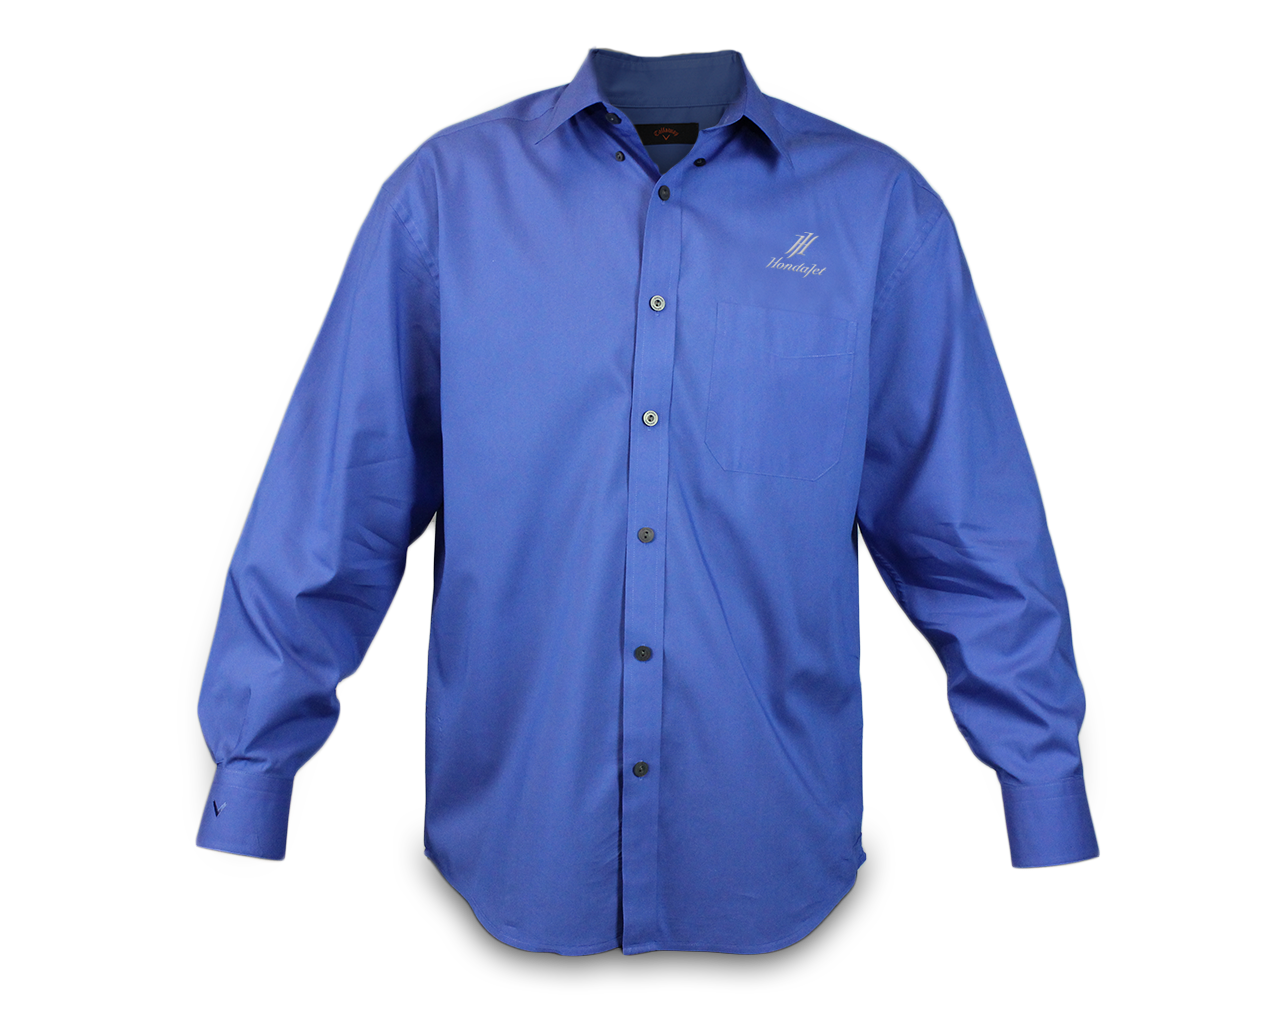 Dress Shirt Png Picture PNG Image